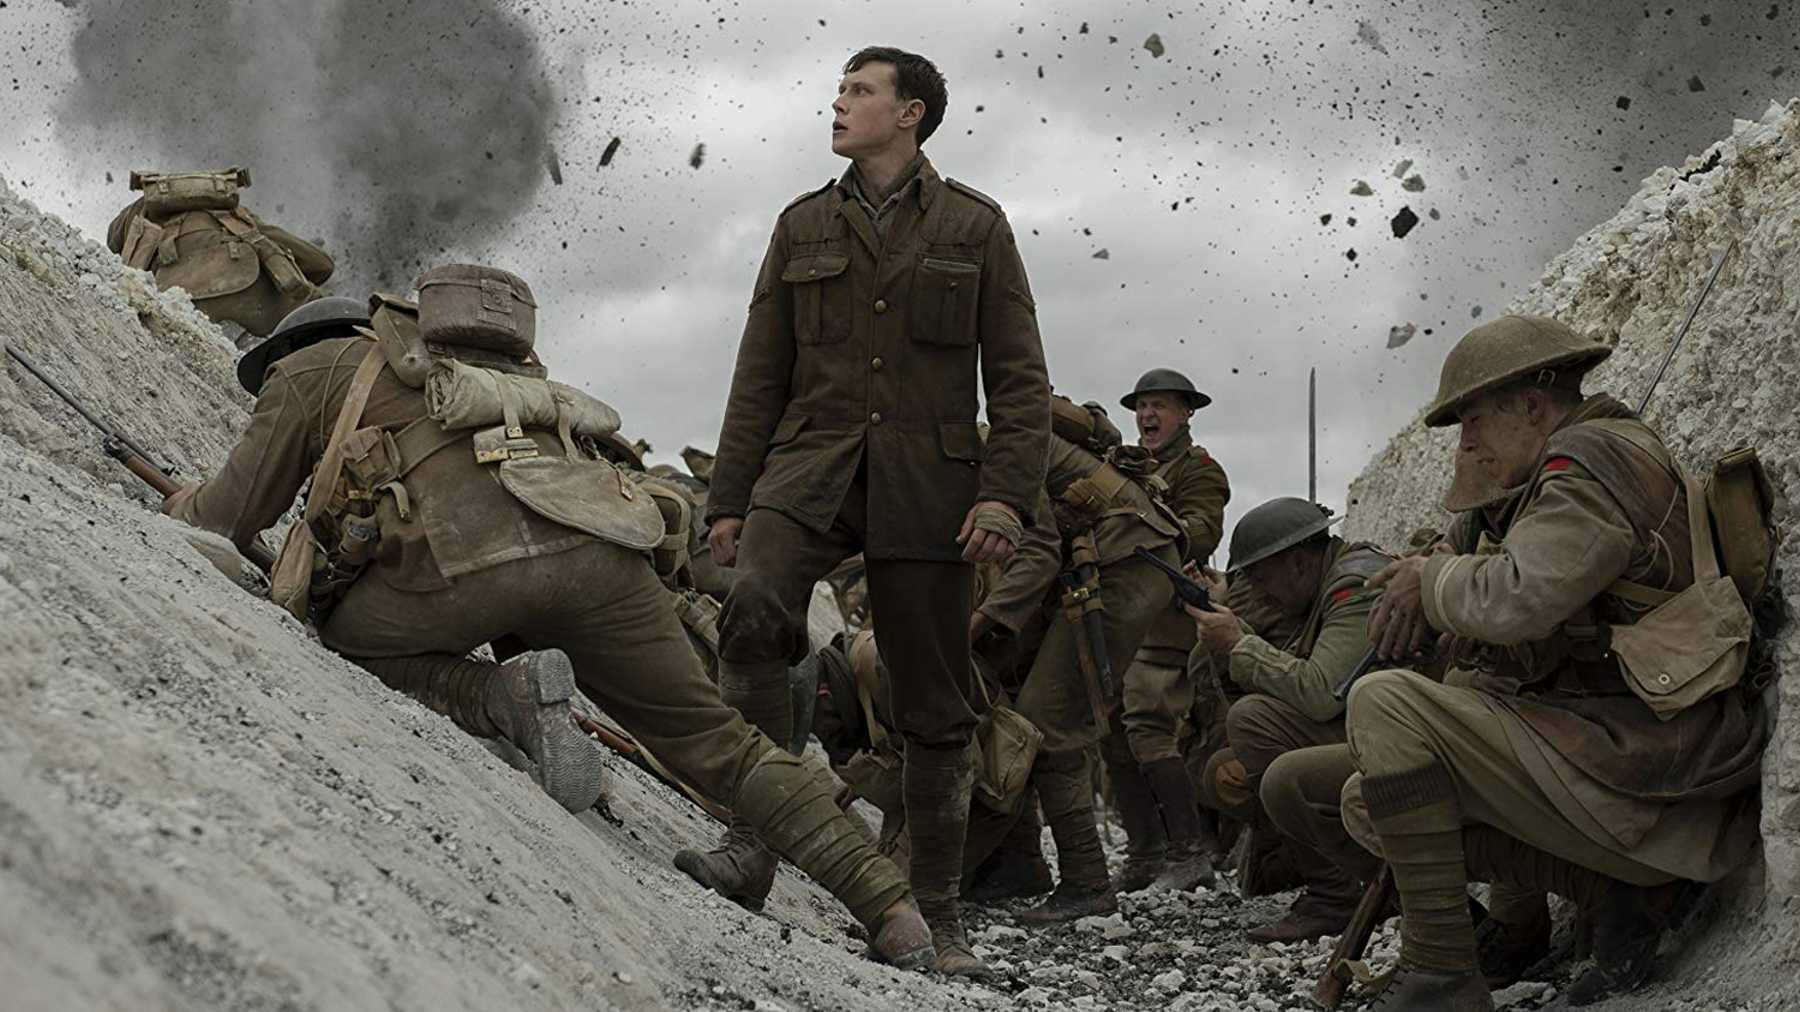 Top 10 War Movies of this Century